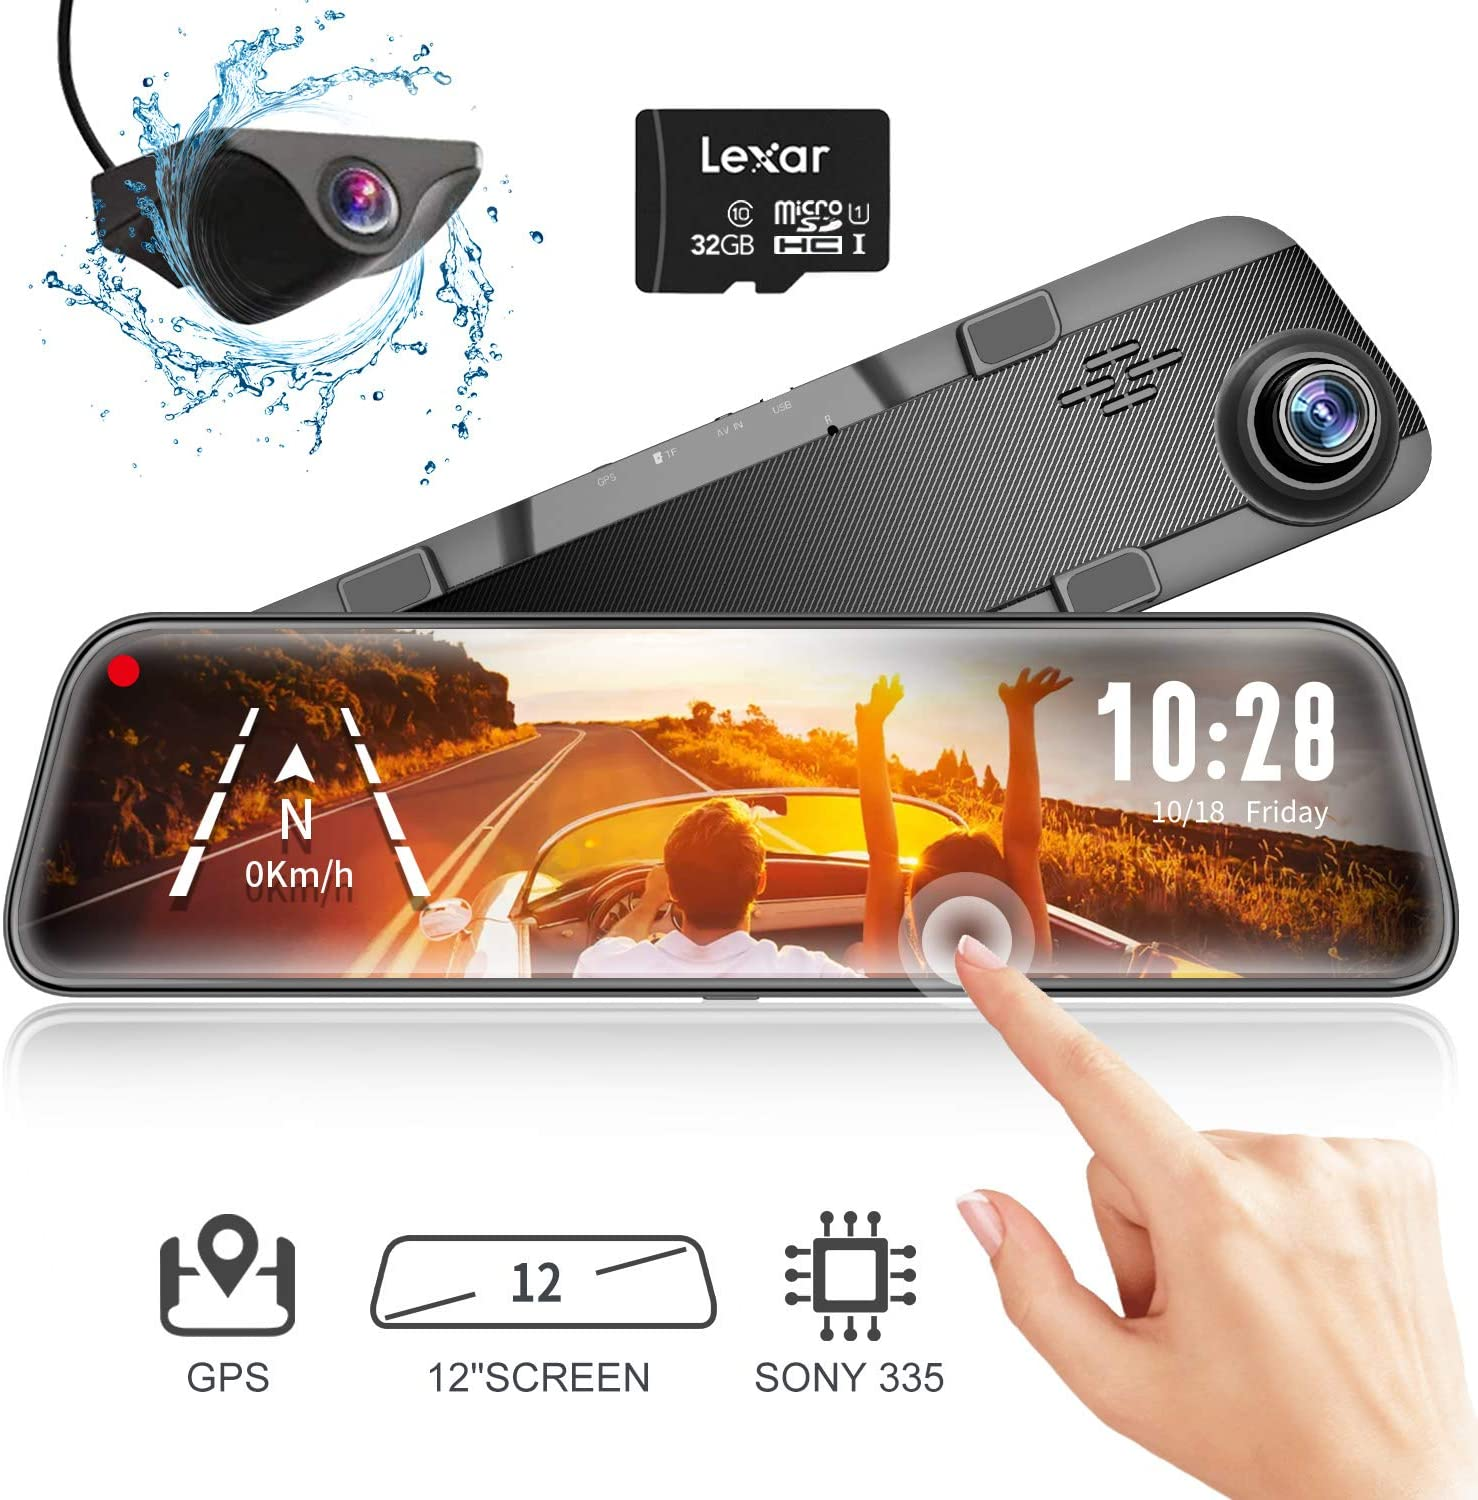 "WOLFBOX Mirror Dash Cam Backup Camera,12"" IPS Full Touch Screen,1296P HD Dual Lens Smart Rear View Mirror for Cars & Trucks, Sony IMX335 HDR Stream Media with Night Vision & LDWS, Free 32GB TF Card"